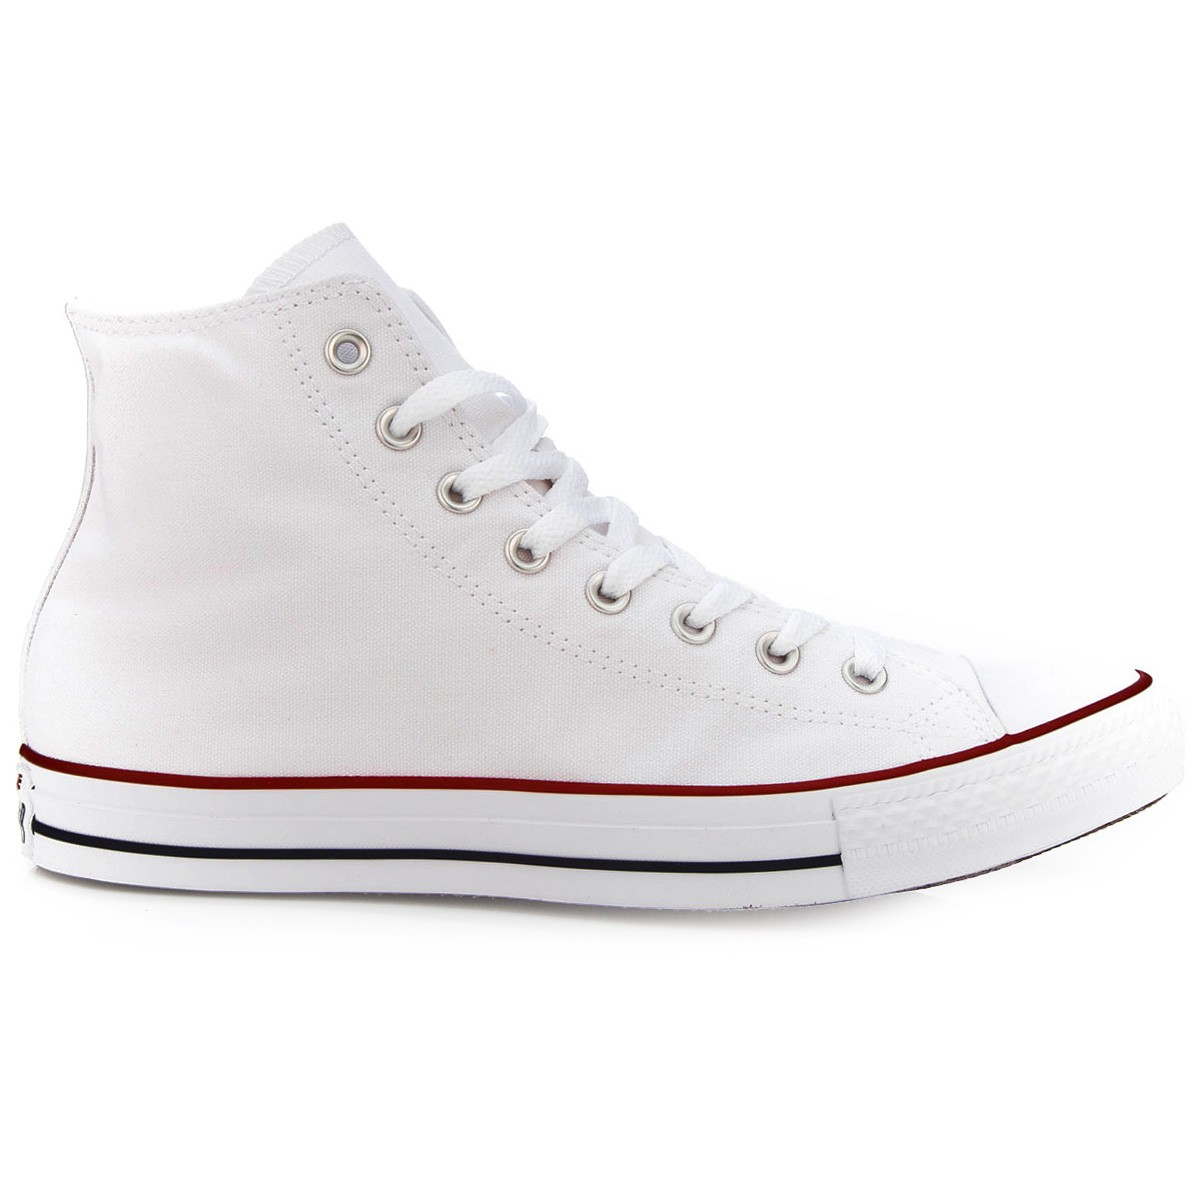 Converse Chuck Taylor All Star High Shoes